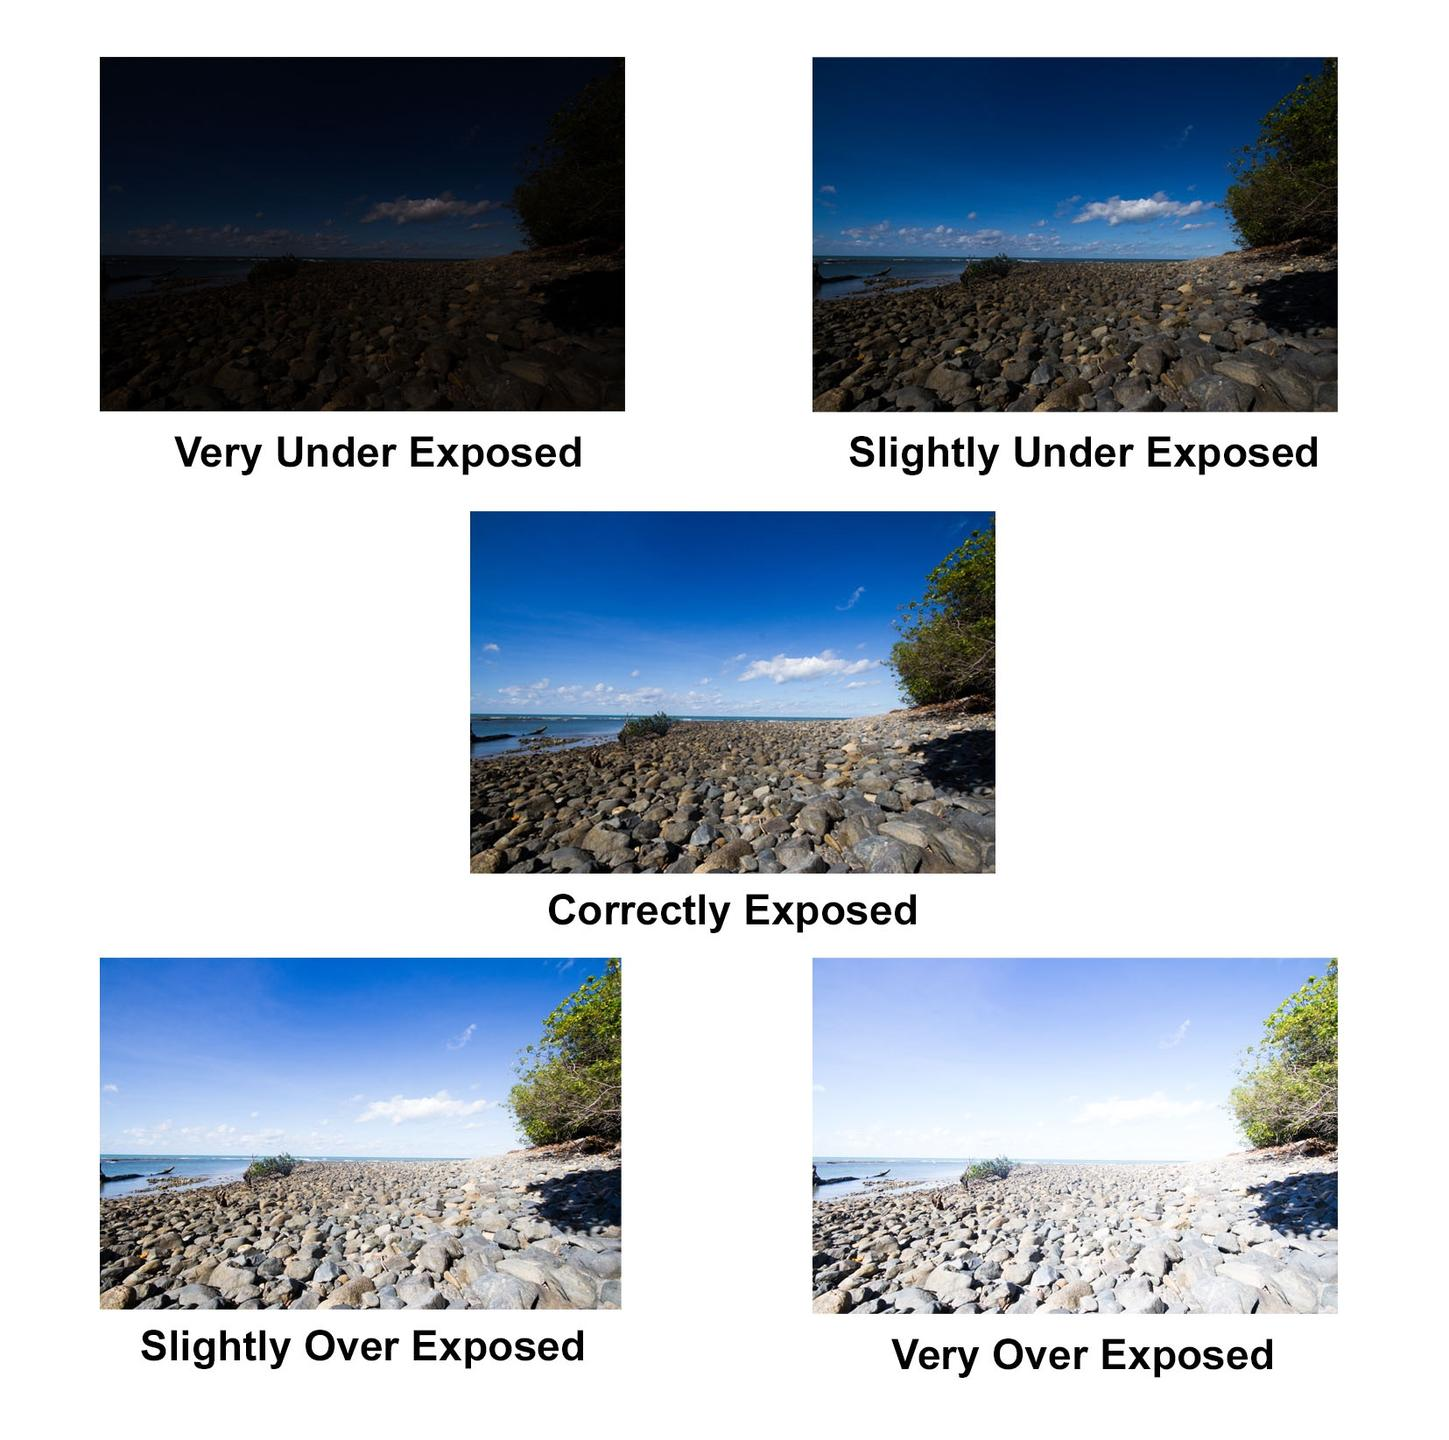 5 Photos of the same place at different exposures